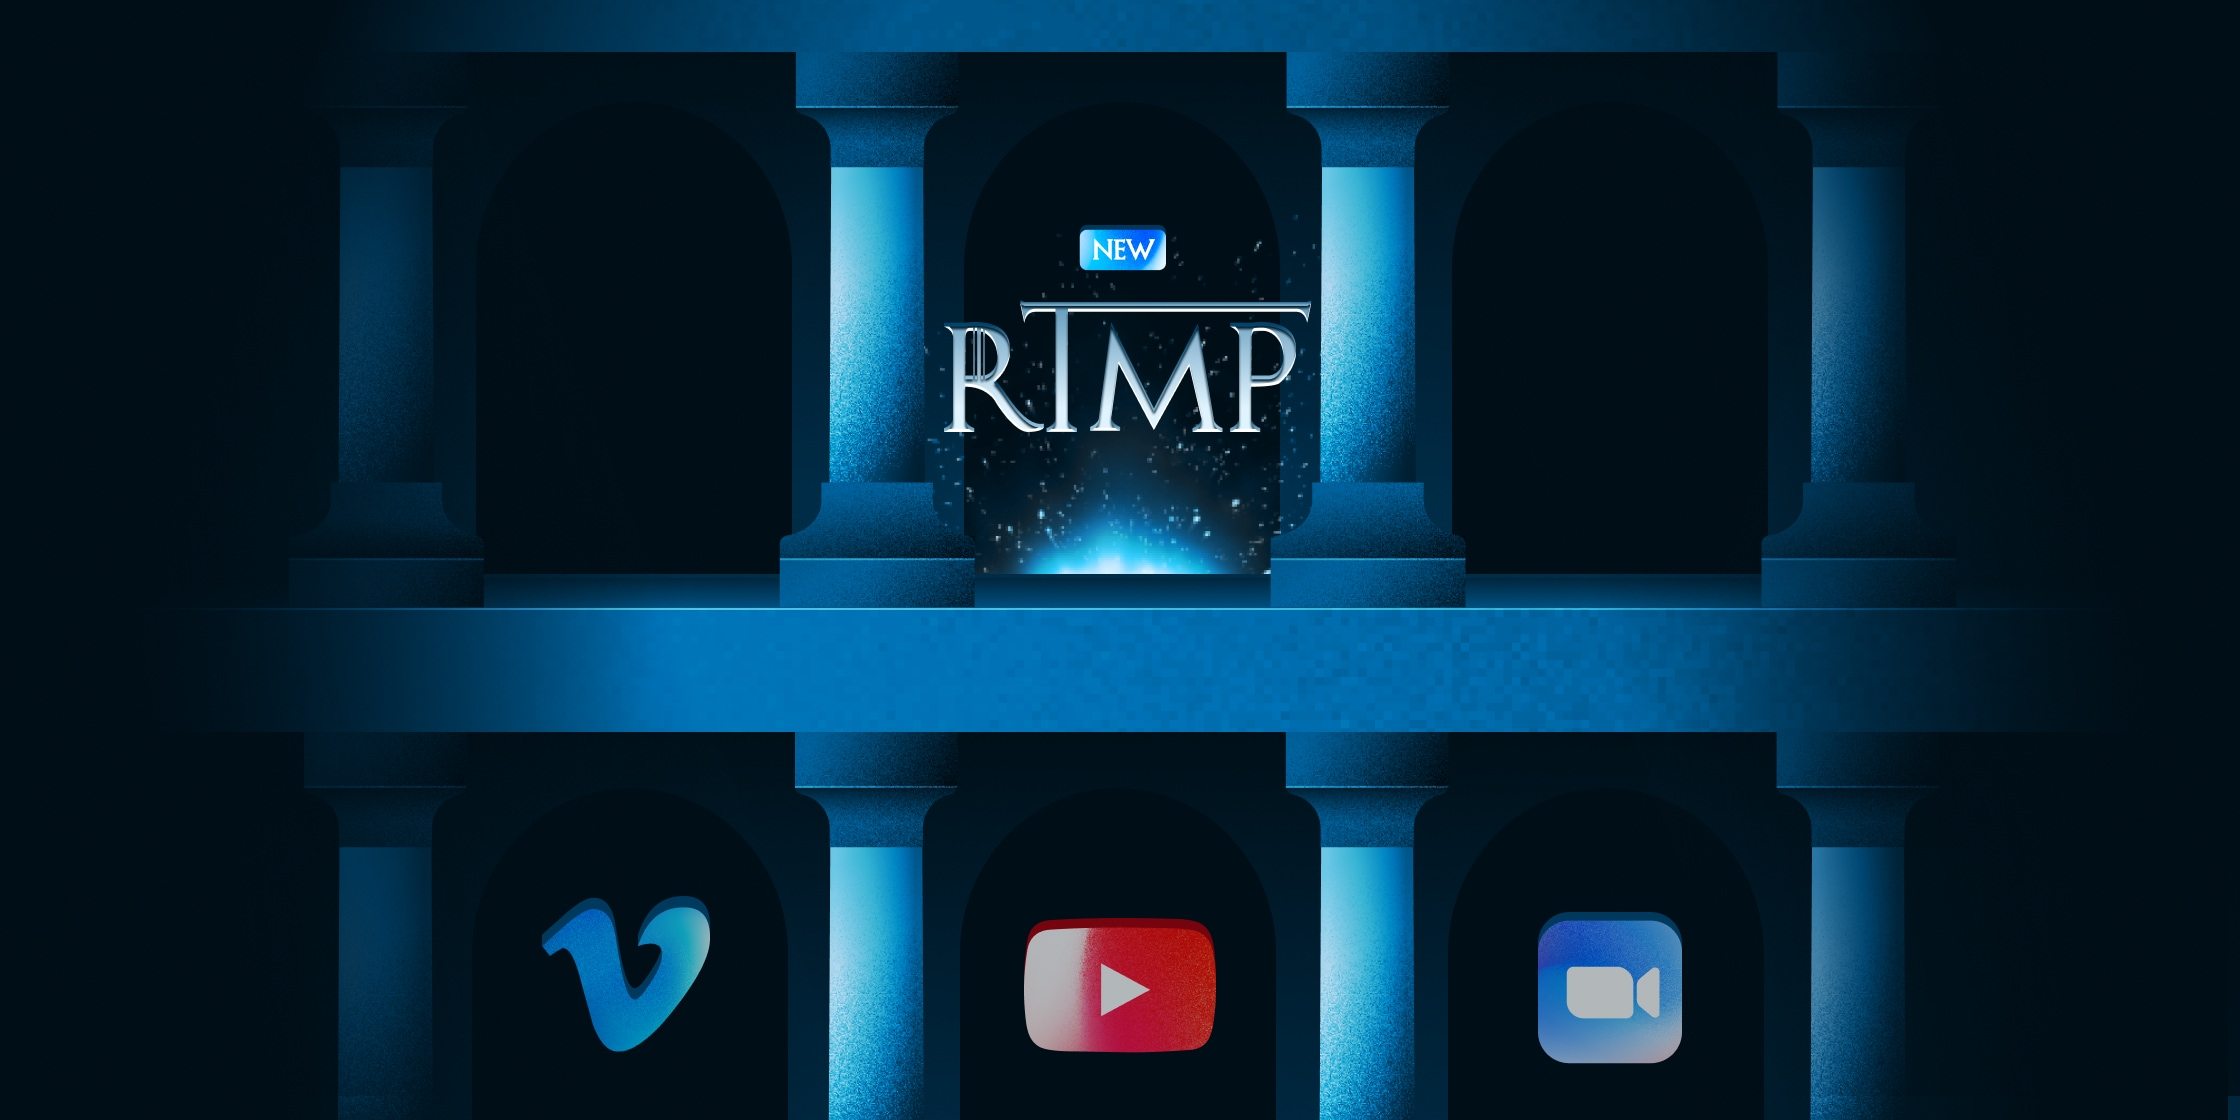 Introducing Attendify's RTMP Support for Live Streaming Events!